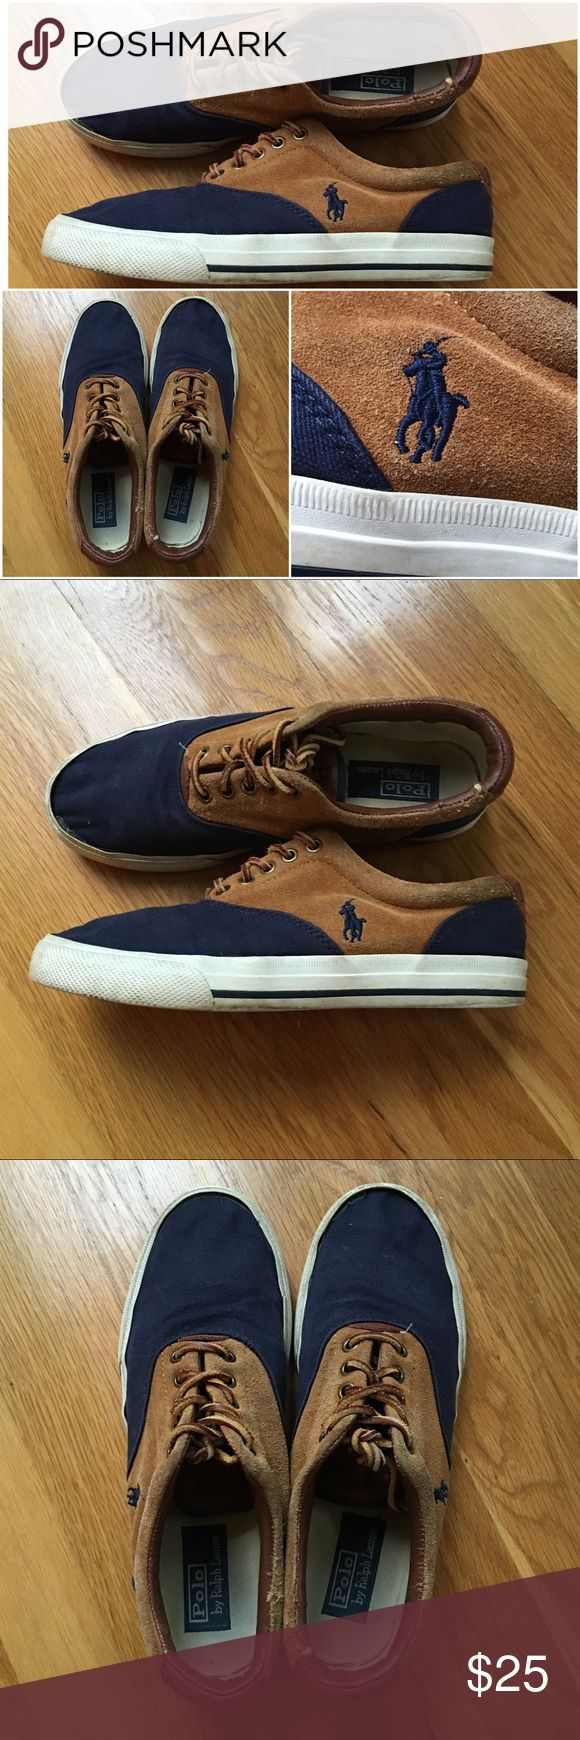 🔷Men's Polo Shoes🔷 Men's Polo Shoes SIZE 9 - these shoes are in great condition! Let me know if you have any questions. Polo by Ralph Lauren Shoes Sneakers